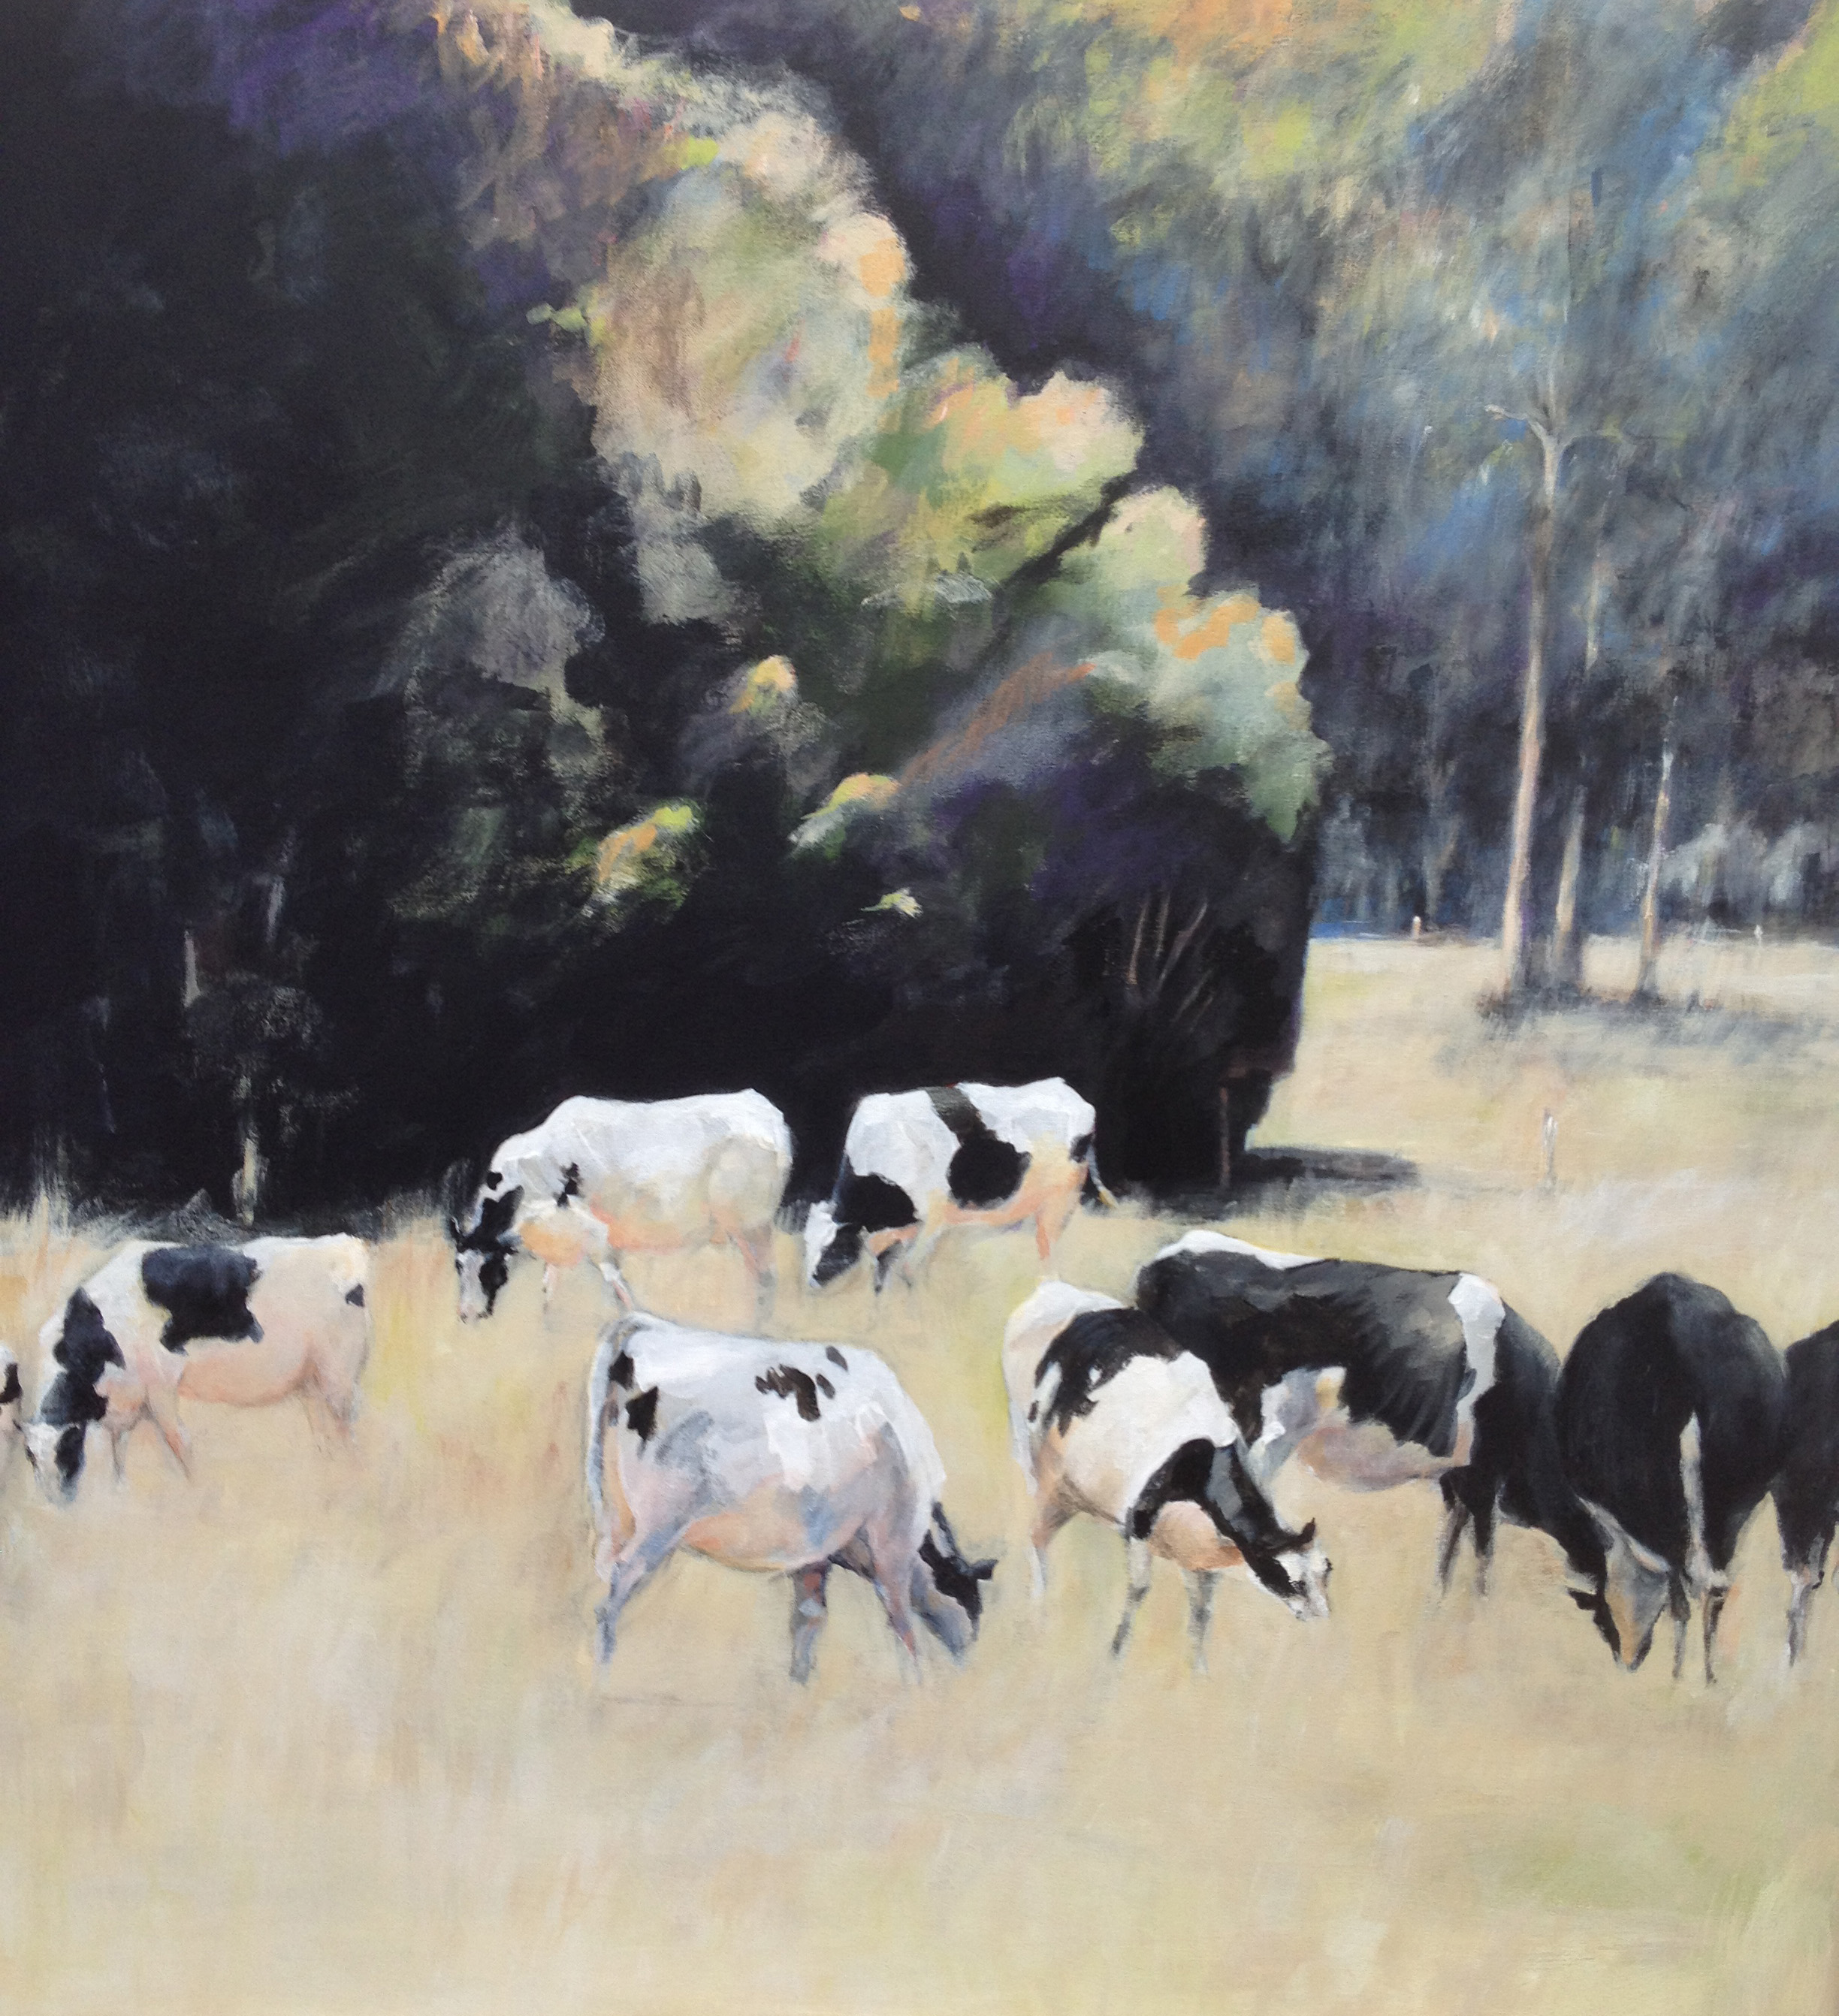 Sue Boettcher South Australian Contemporary Artist living in Adelaide